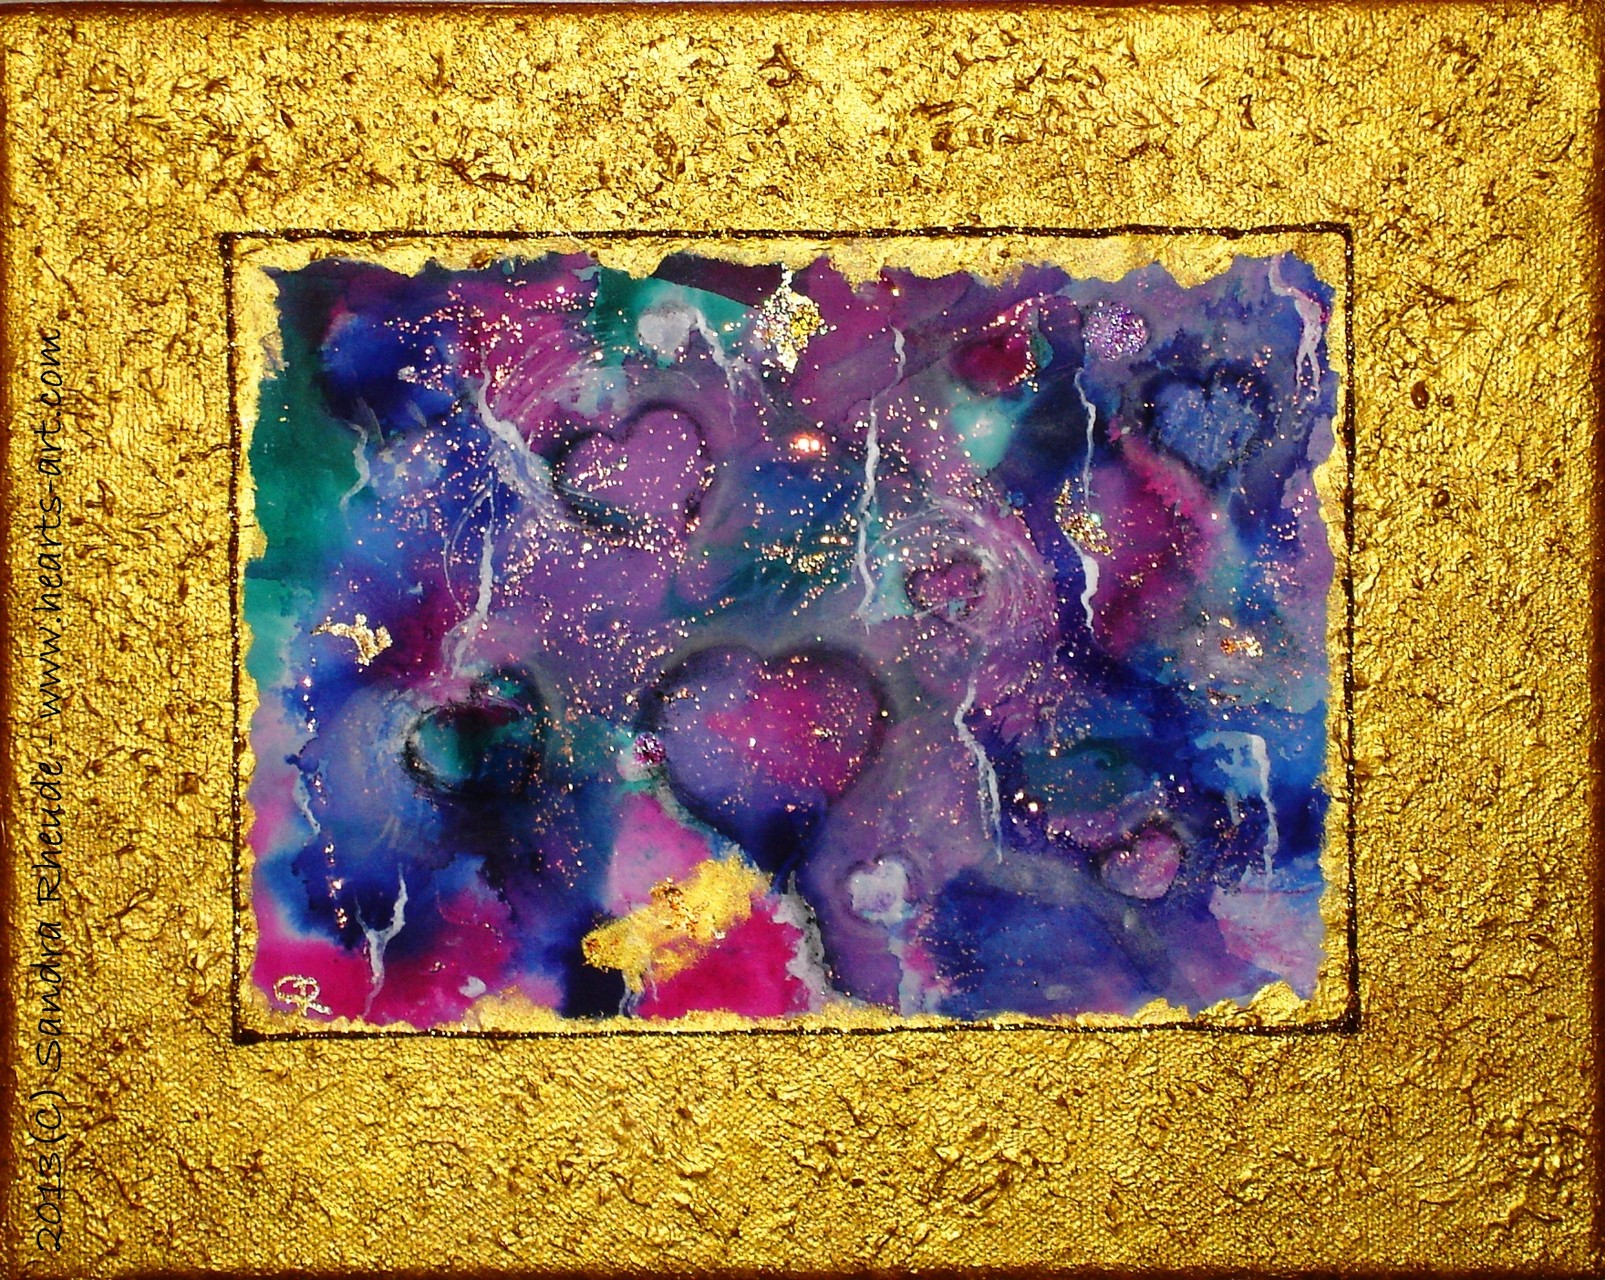 'Universe of Searching Hearts' - 2013/78 - Acryl/MixedMedia auf Leinwand - 30 x 24 cm - € 130